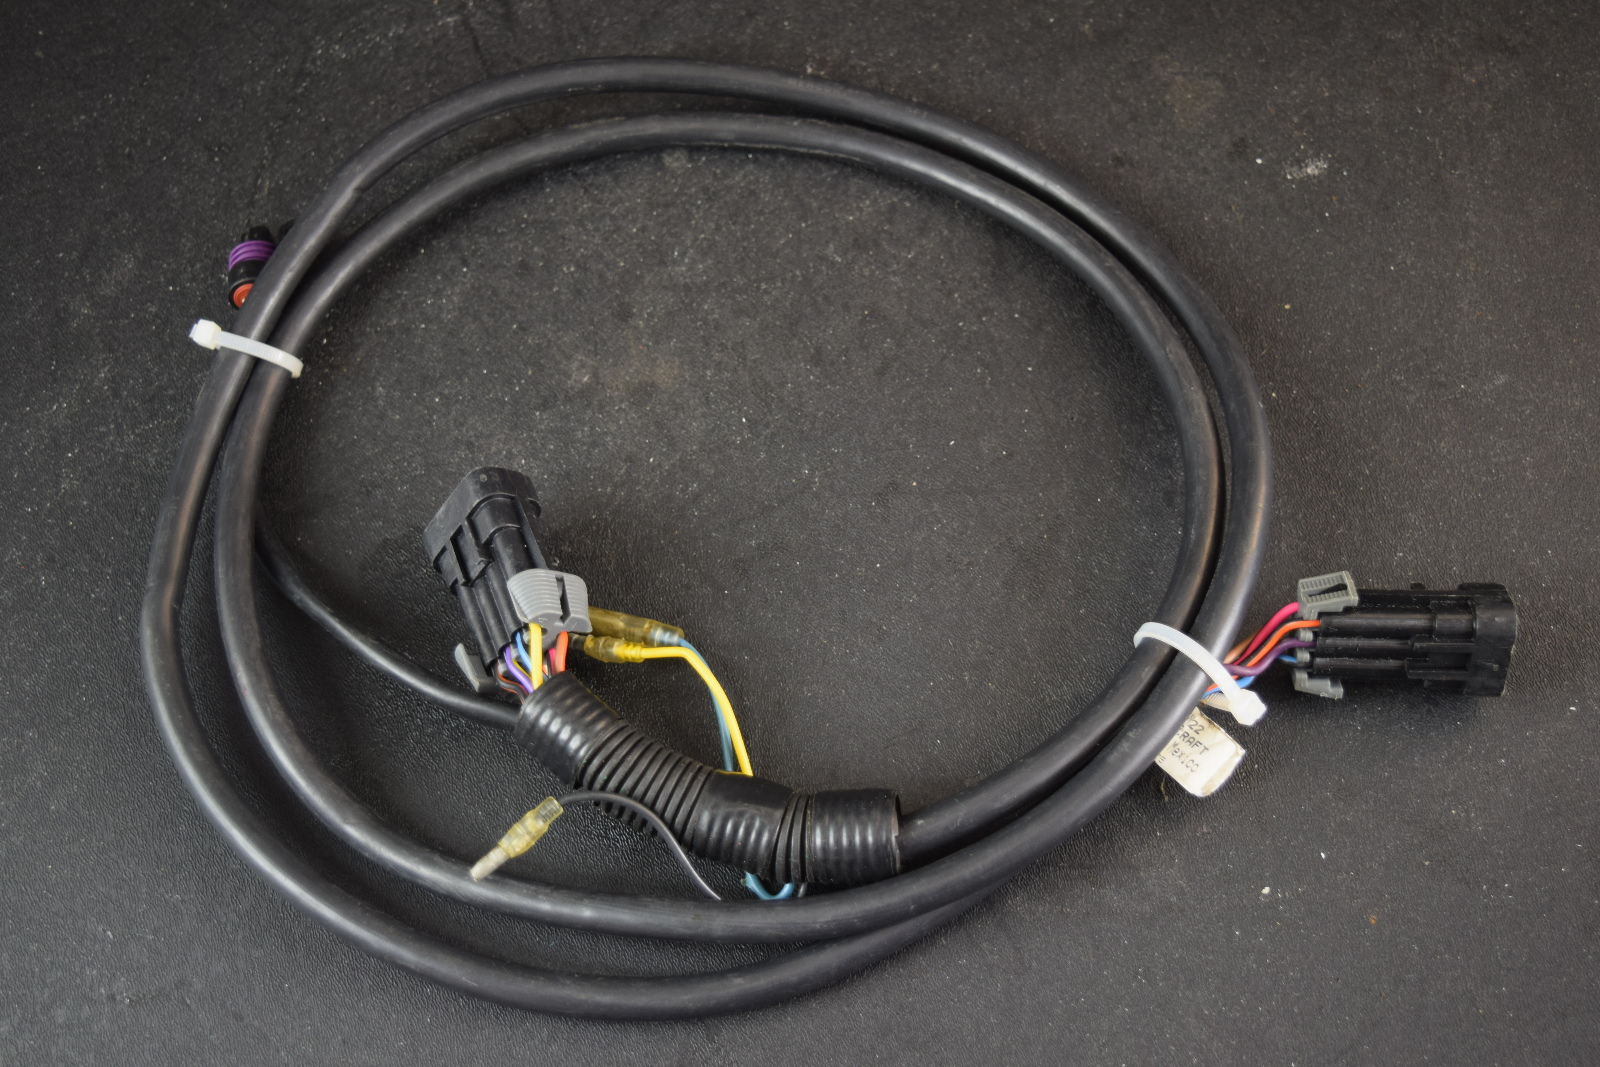 Color The Tach Sending Wire Is See Picture Of Wiring Harness Anyone